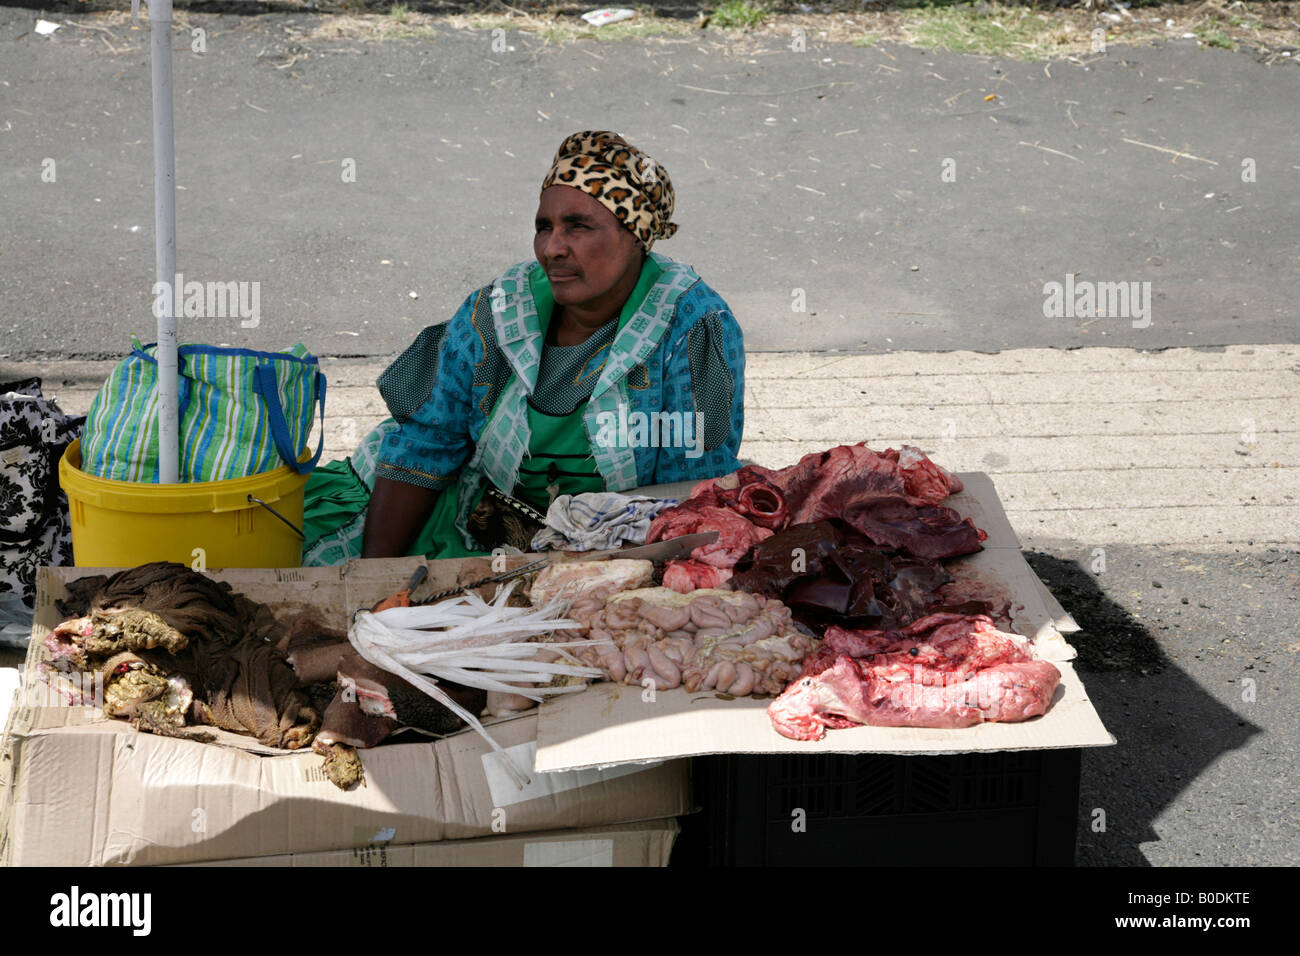 Meat Seller in a South African street market - Stock Image